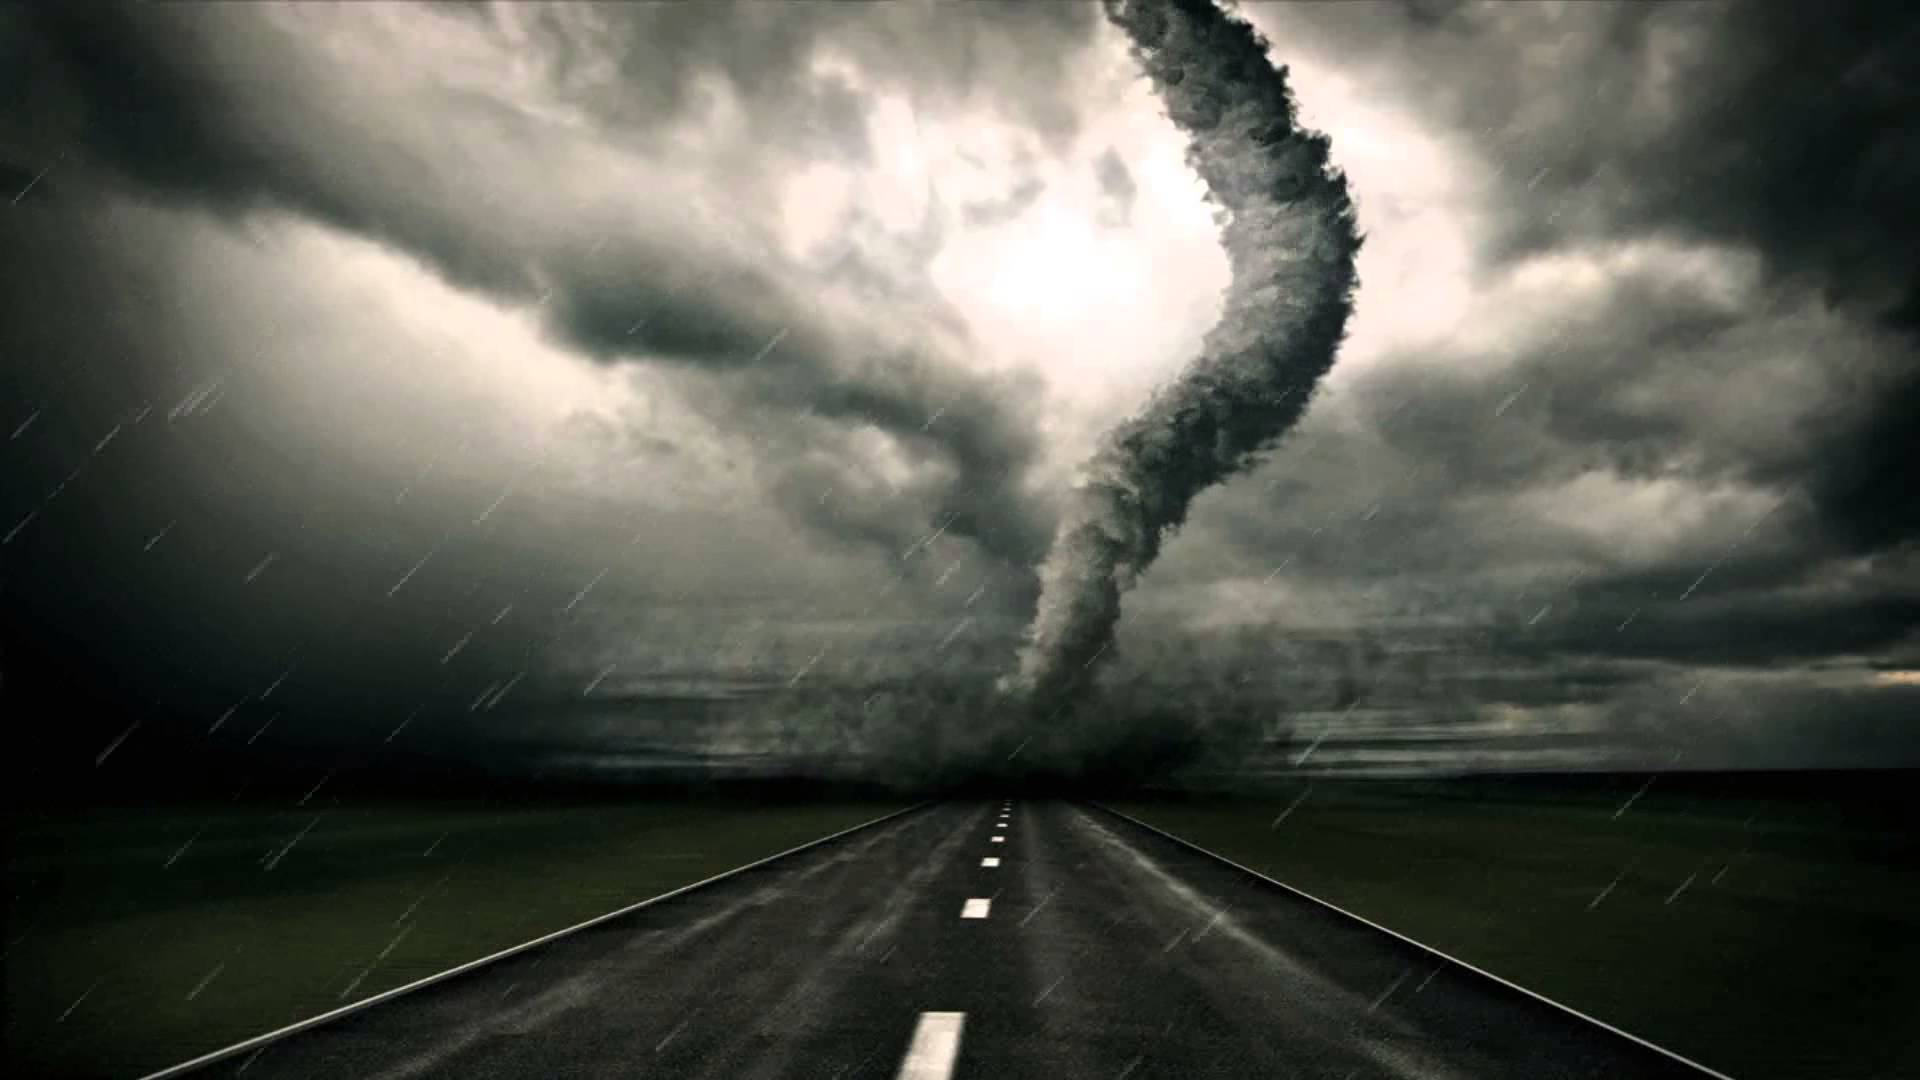 Twister Animated Wallpaper http://www.desktopanimated.com - YouTube